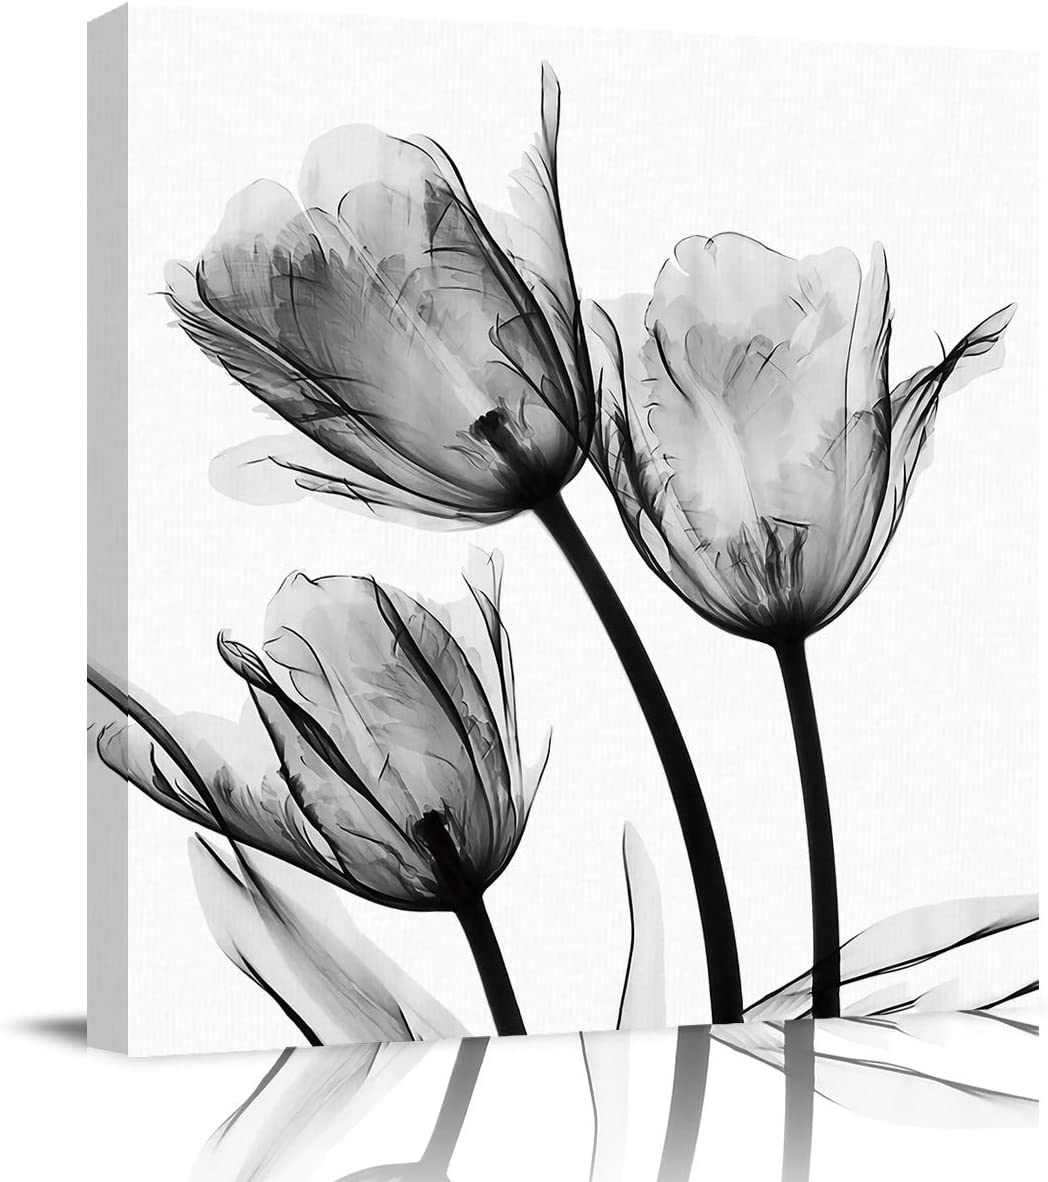 Abstract Wall Art on Canvas for Bedroom Living Room Bathrooms Kitchen,Gray Tulip Flower Art Pattern Artworks Office Home Decor,Stretched by Wooden Frame,Ready to Hang,12x12in